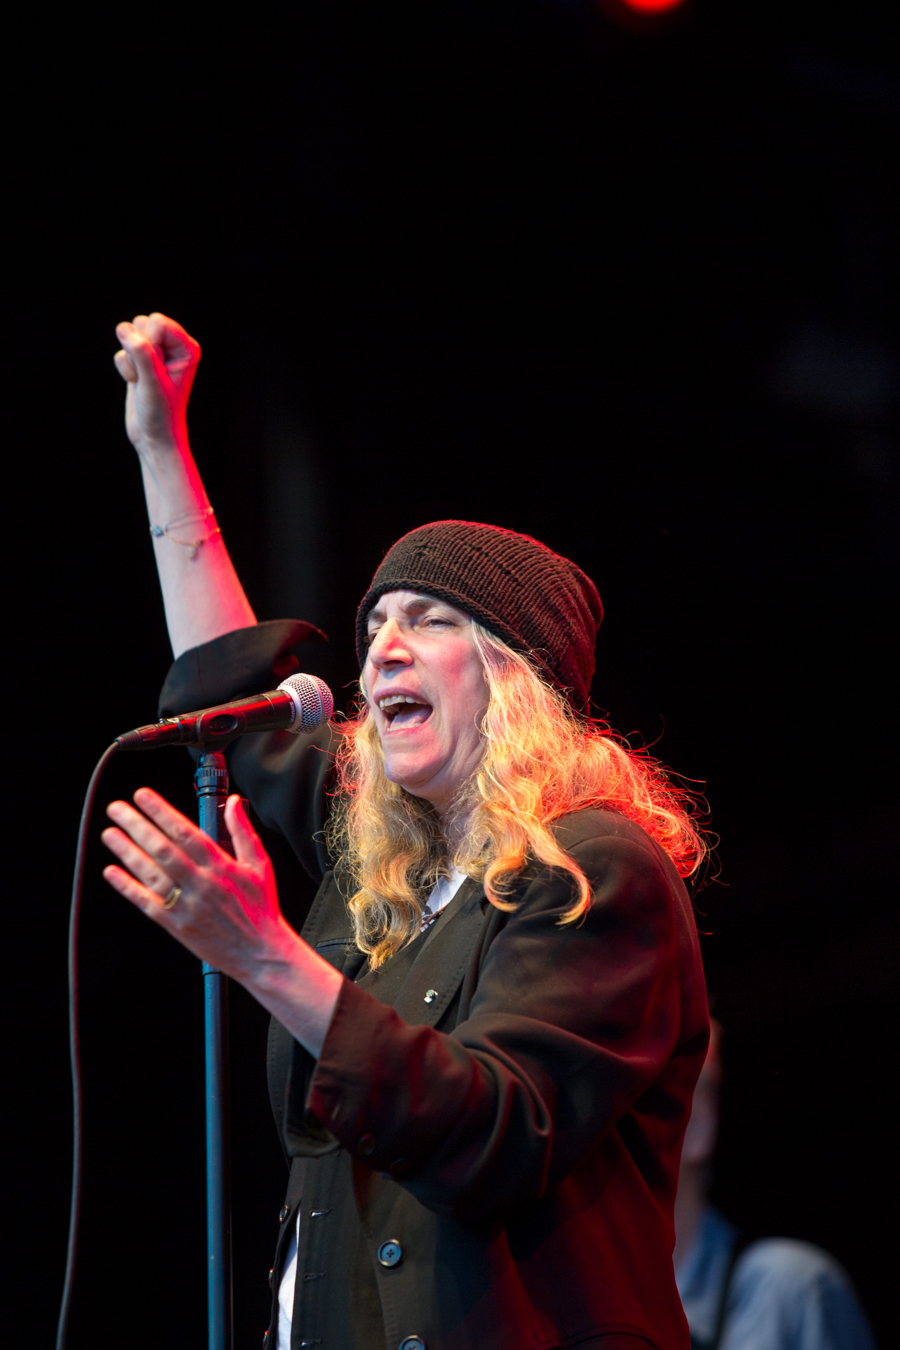 140730-Patti-Smith-Foto-Rebecca-Carlgren-livefoto-nu-photo--12